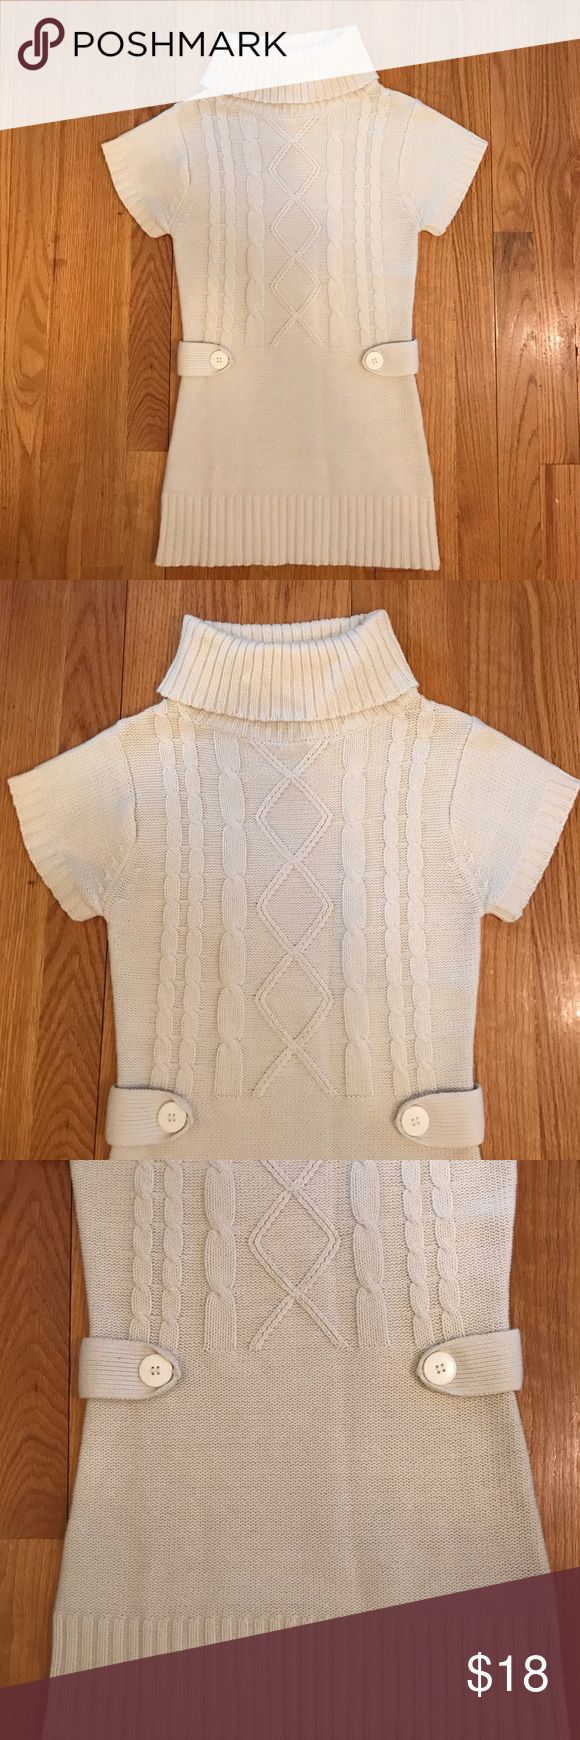 Body Central Sweater Top -- Great with Leggings Body Central Sweater Top -- Great with Leggings. Size Juniors Medium. Excellent condition. Beige color. Body Central Sweaters